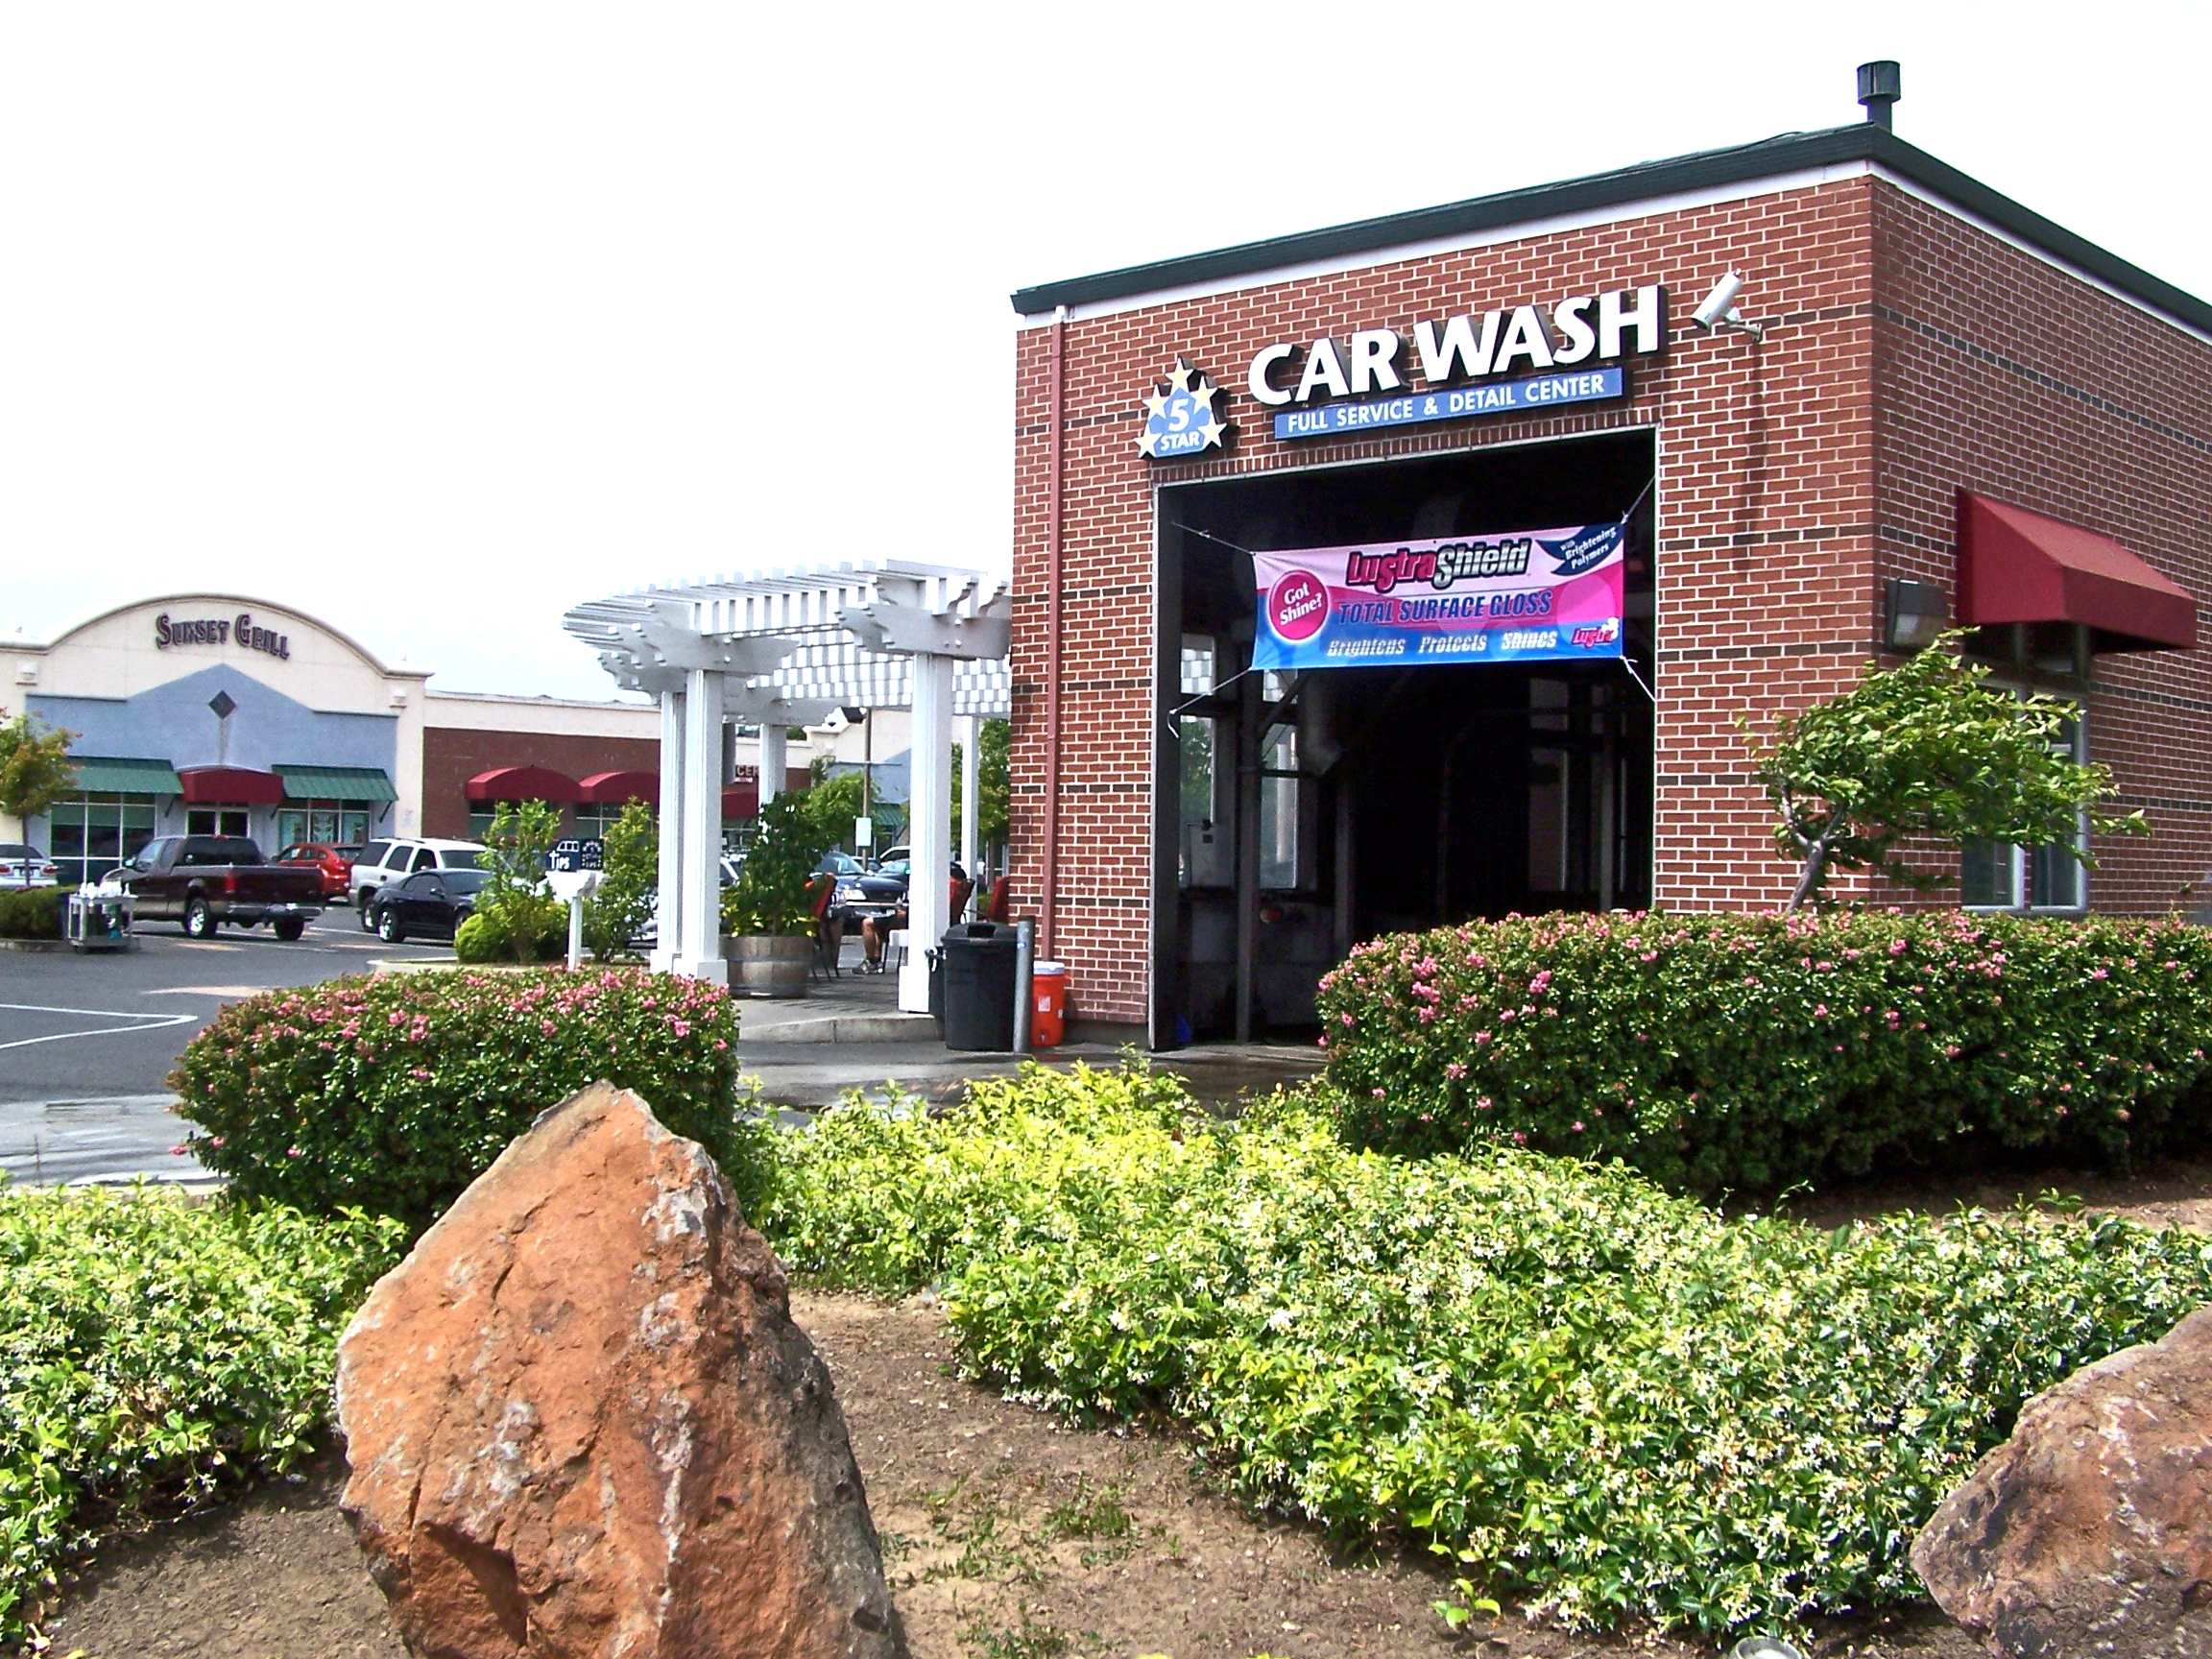 5 Star Car Wash And Detail Center